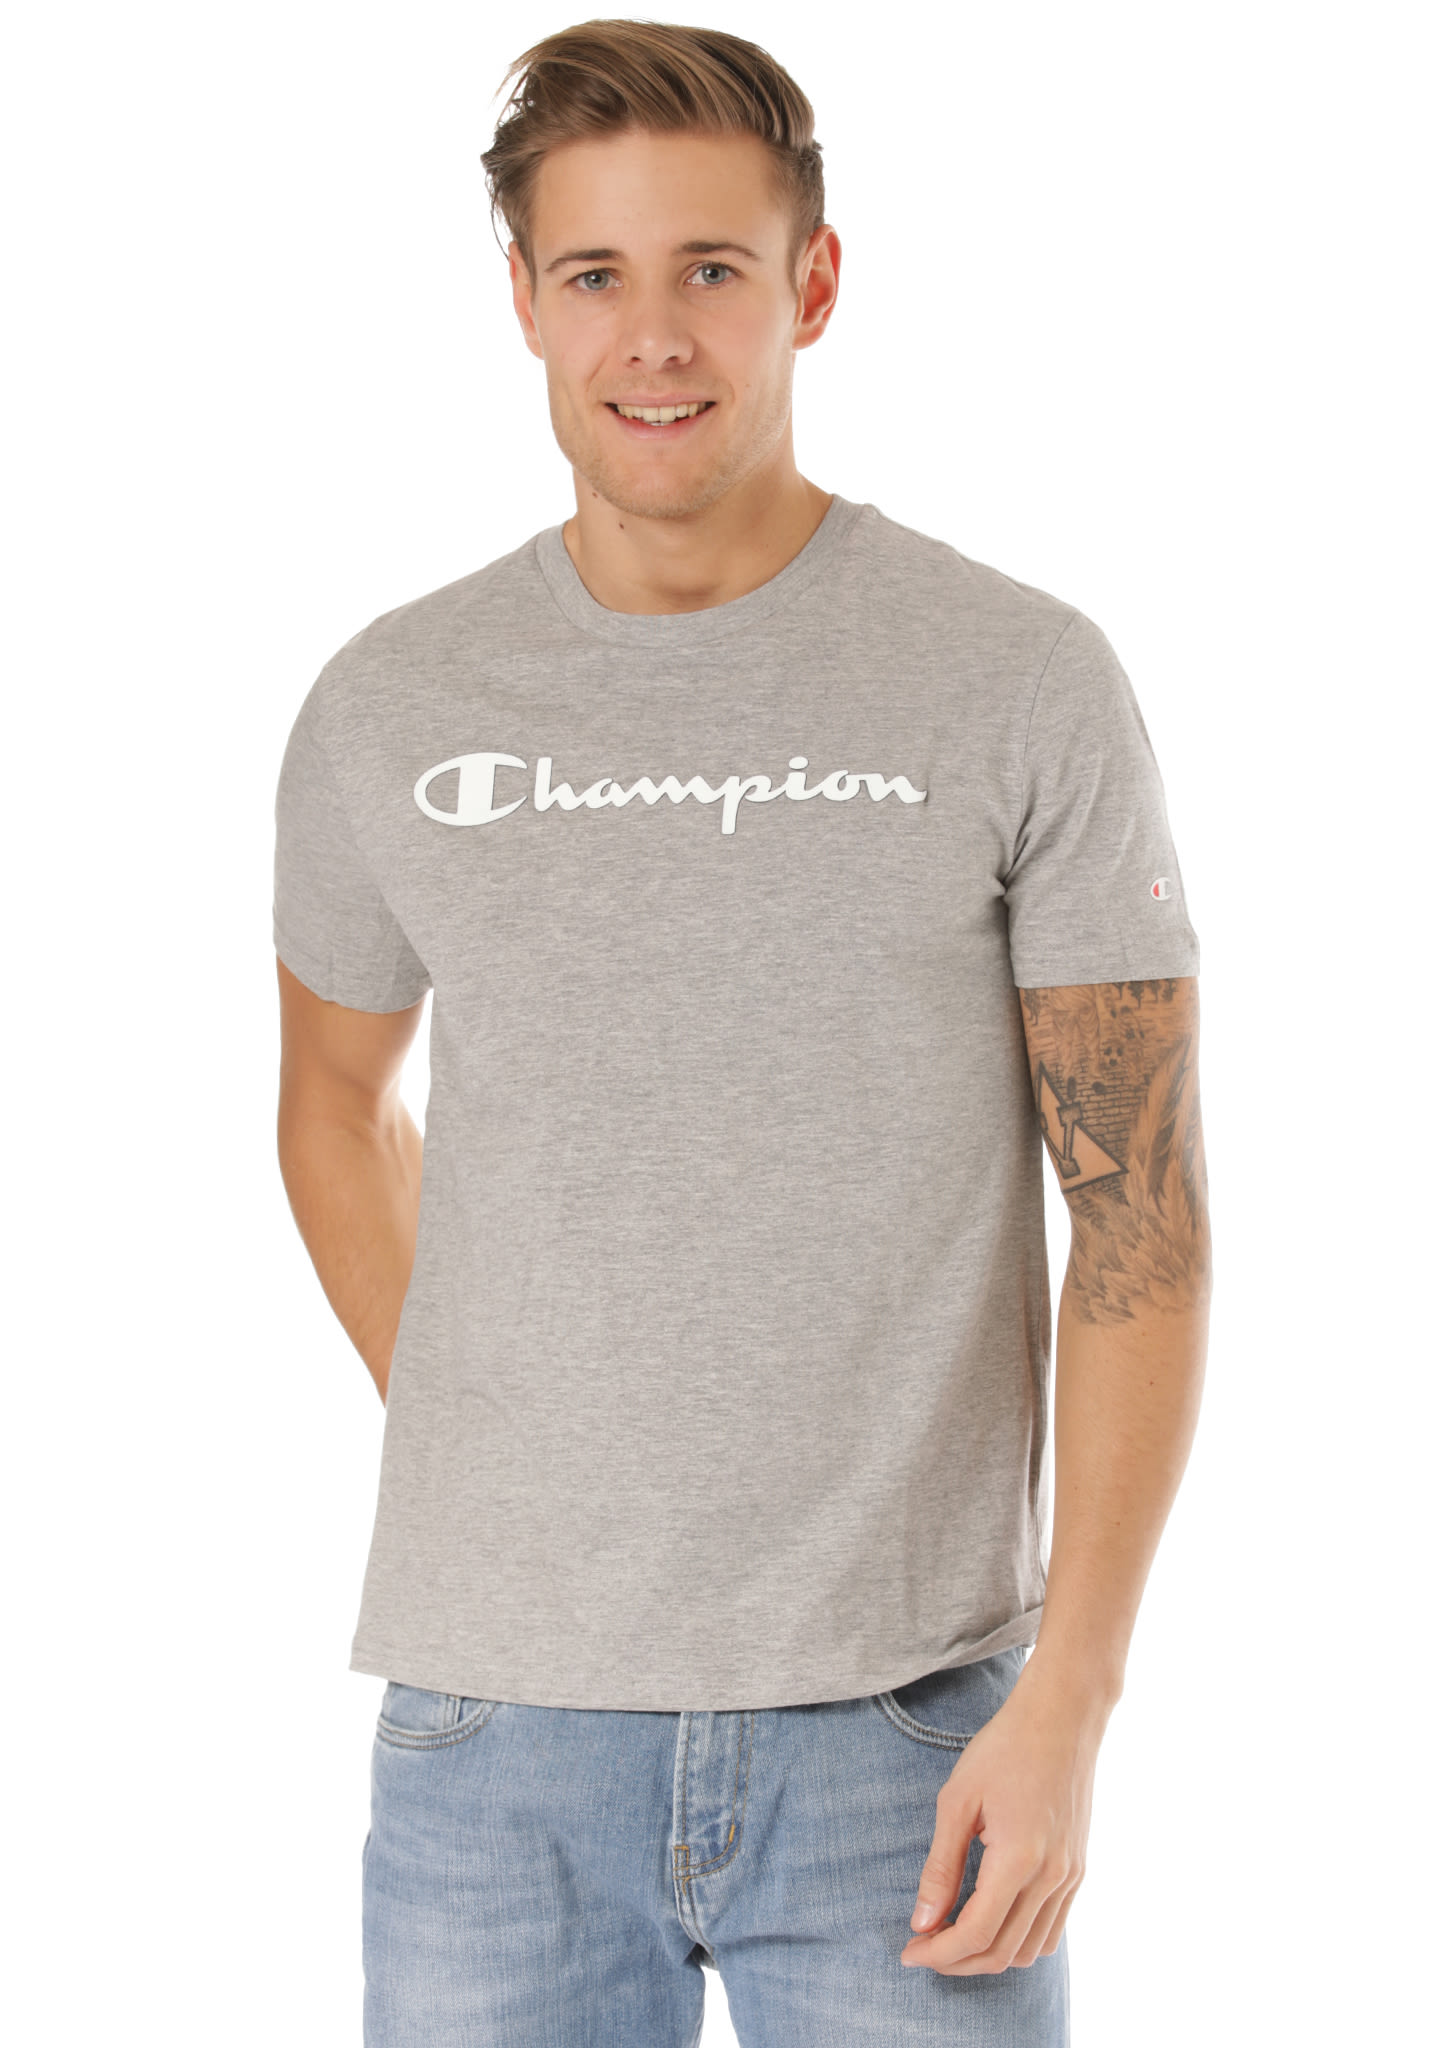 206ee57020cd Champion Crewneck - T-Shirt for Men - Grey - Planet Sports